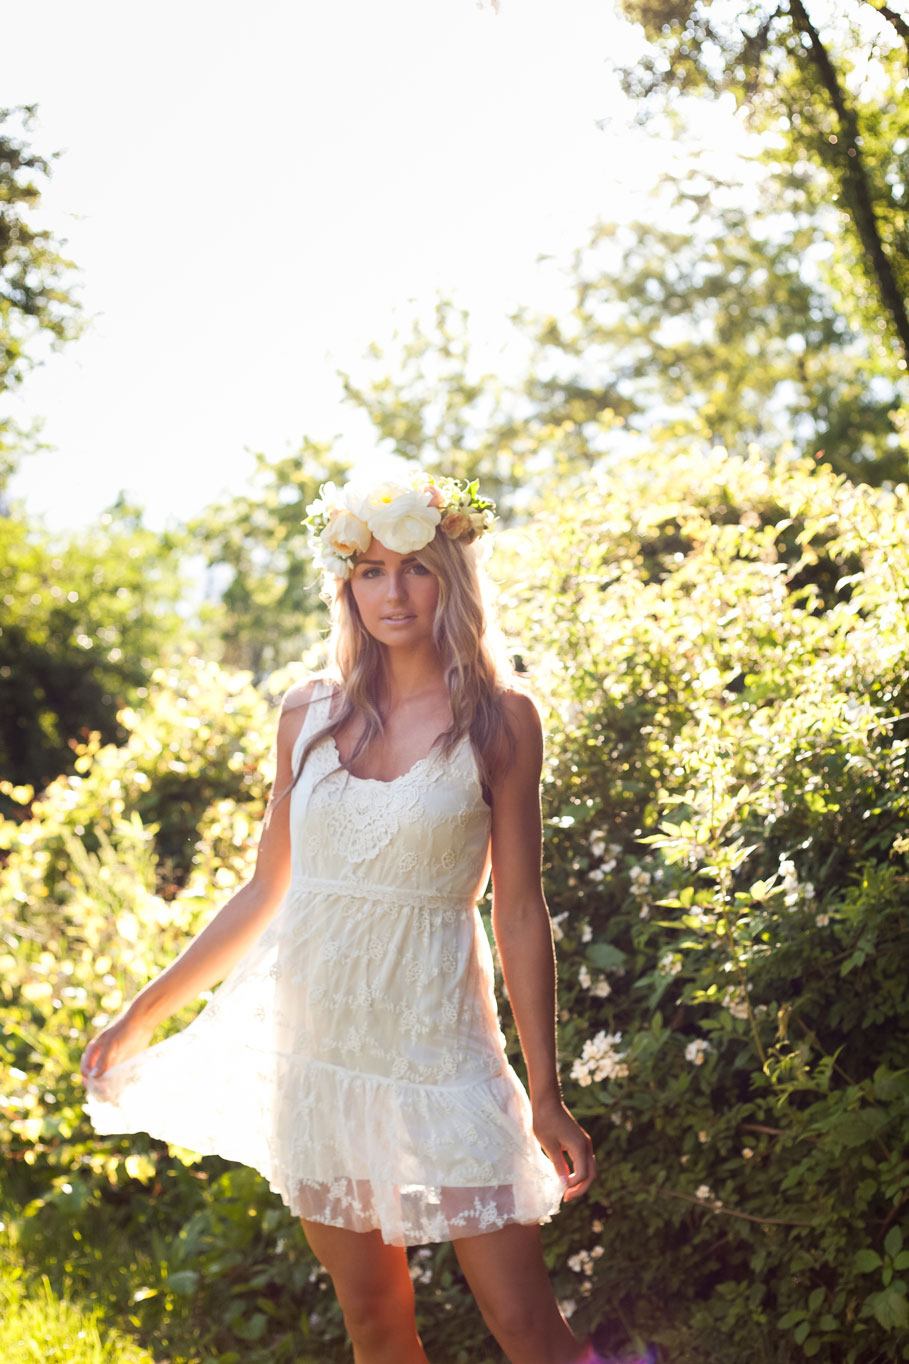 Cathy-Martin-Flowers-Editorial-Vineyard-Bride-Photo-By-Gemini-Photography-006.jpg